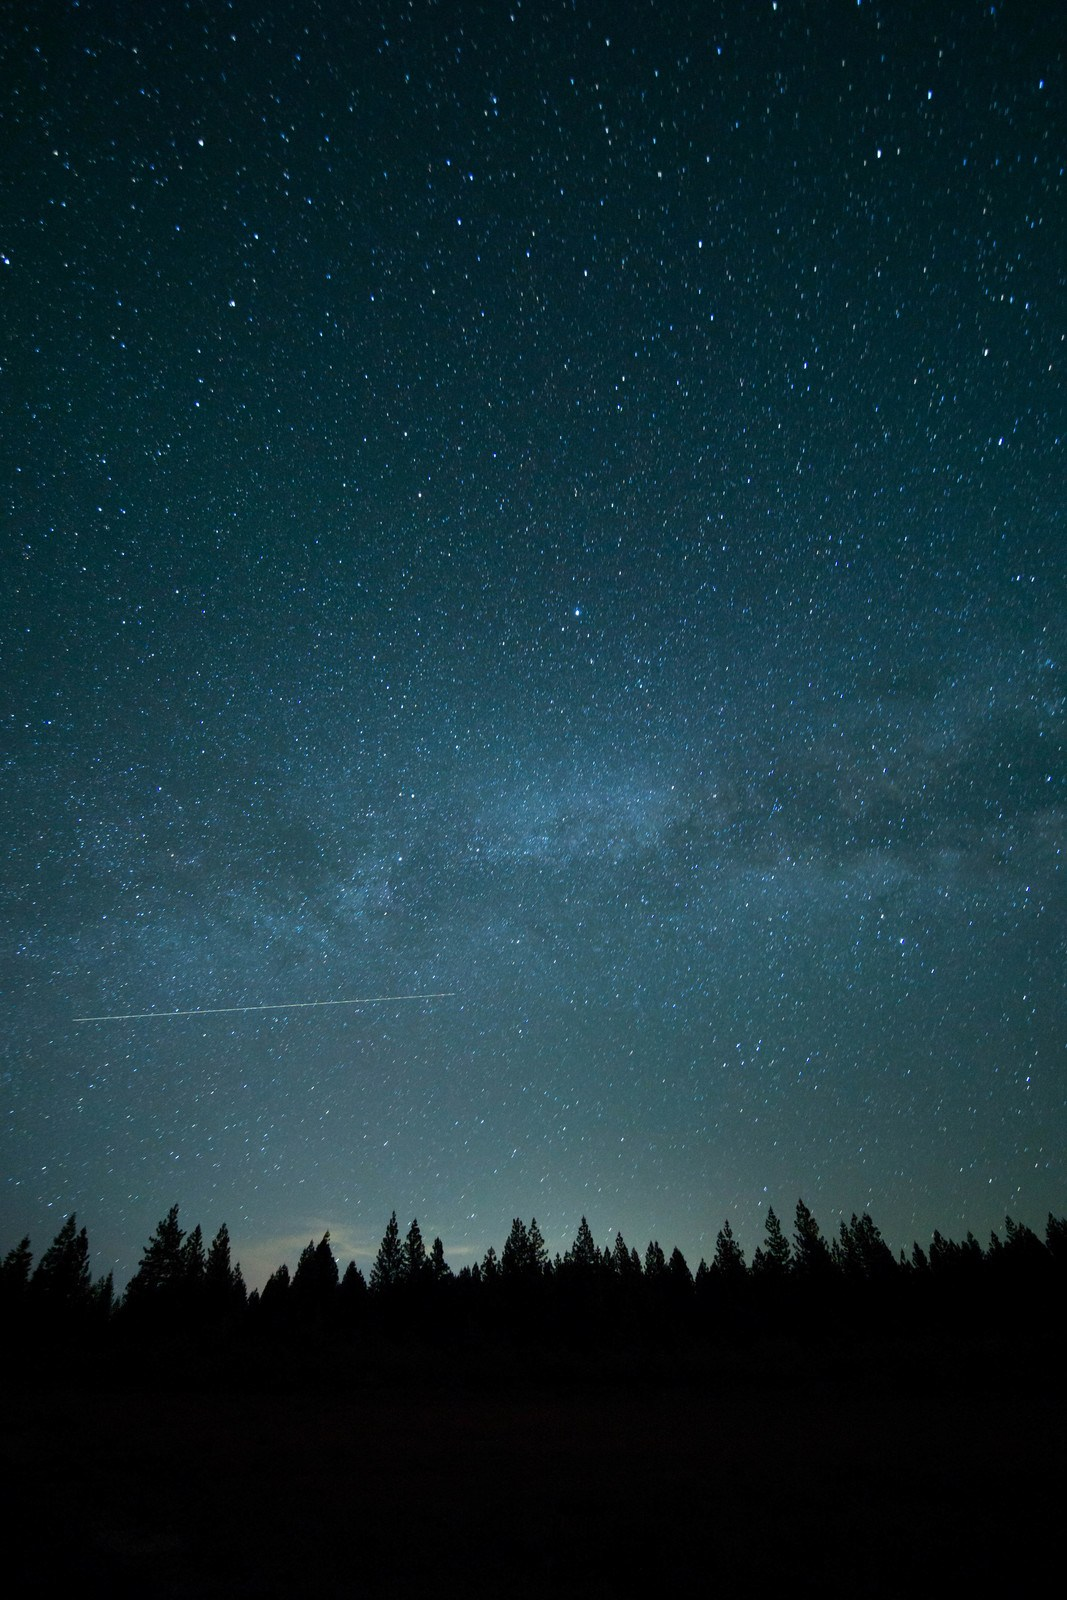 Trees And Stars at Nighttime by Wil-Stewart